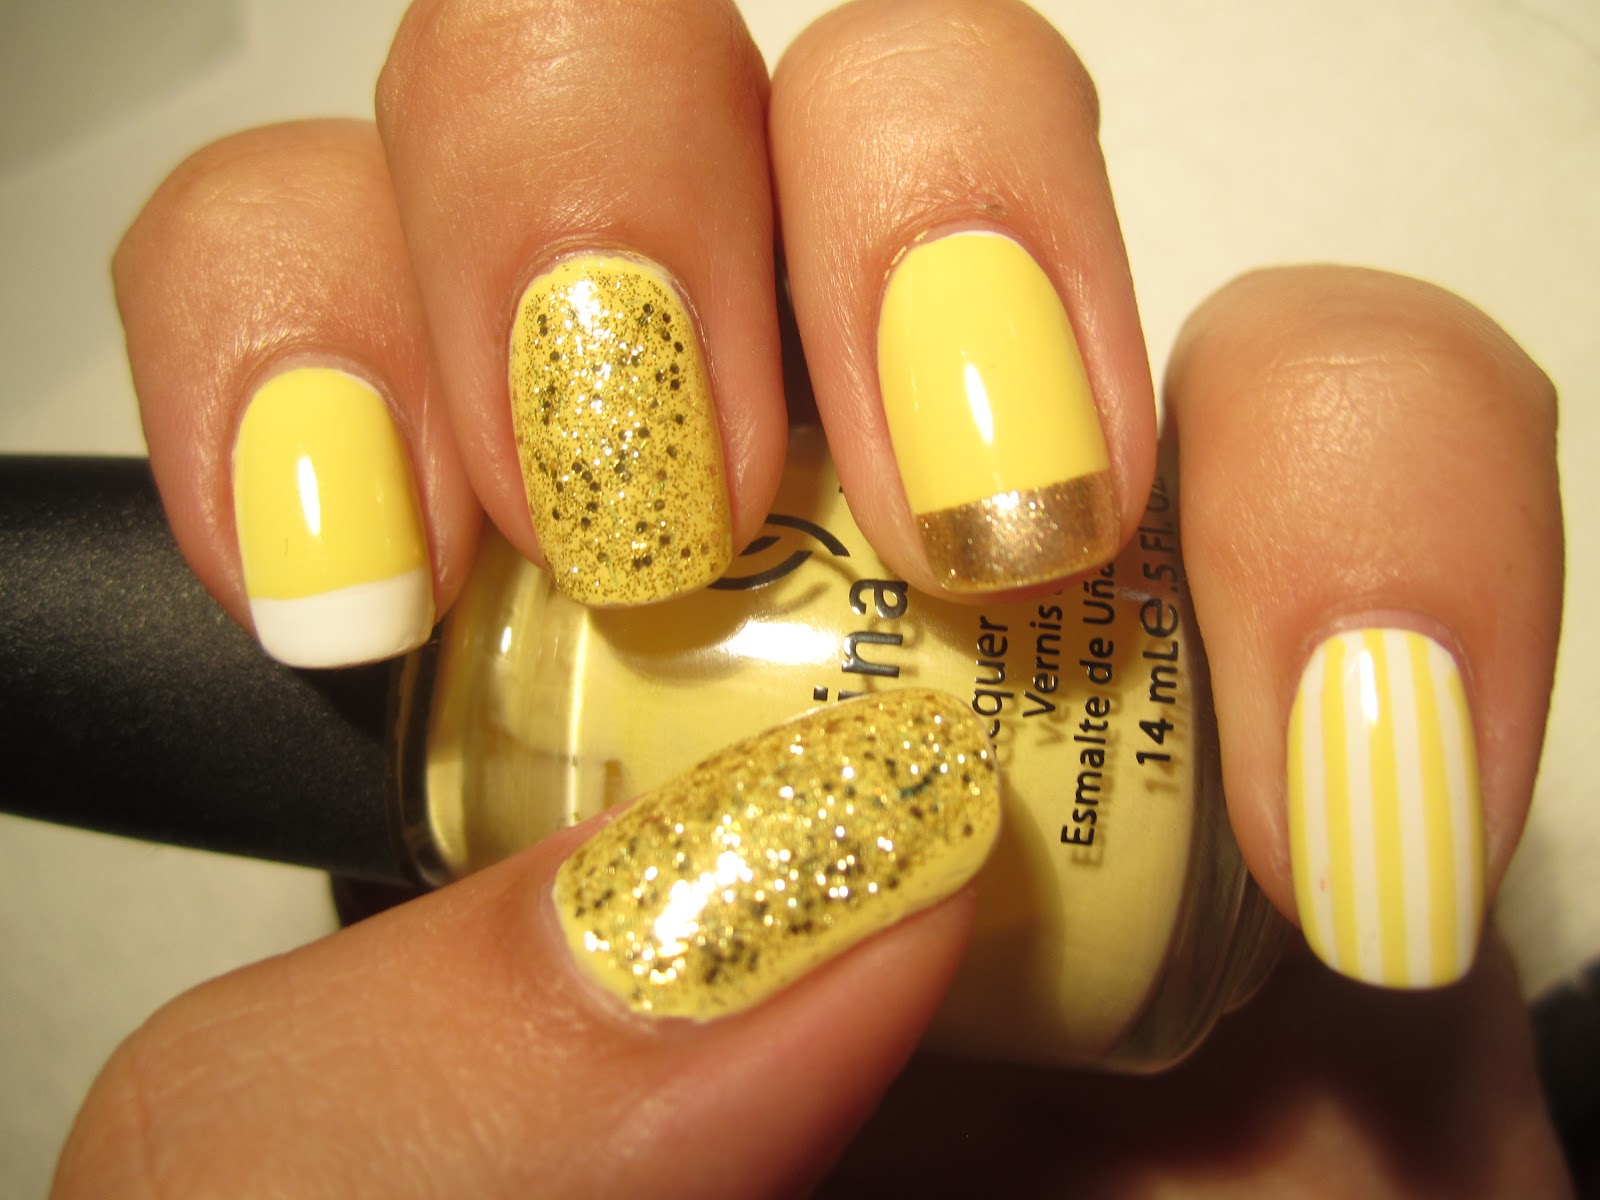 Yellow, gold, and white contrasting patterns